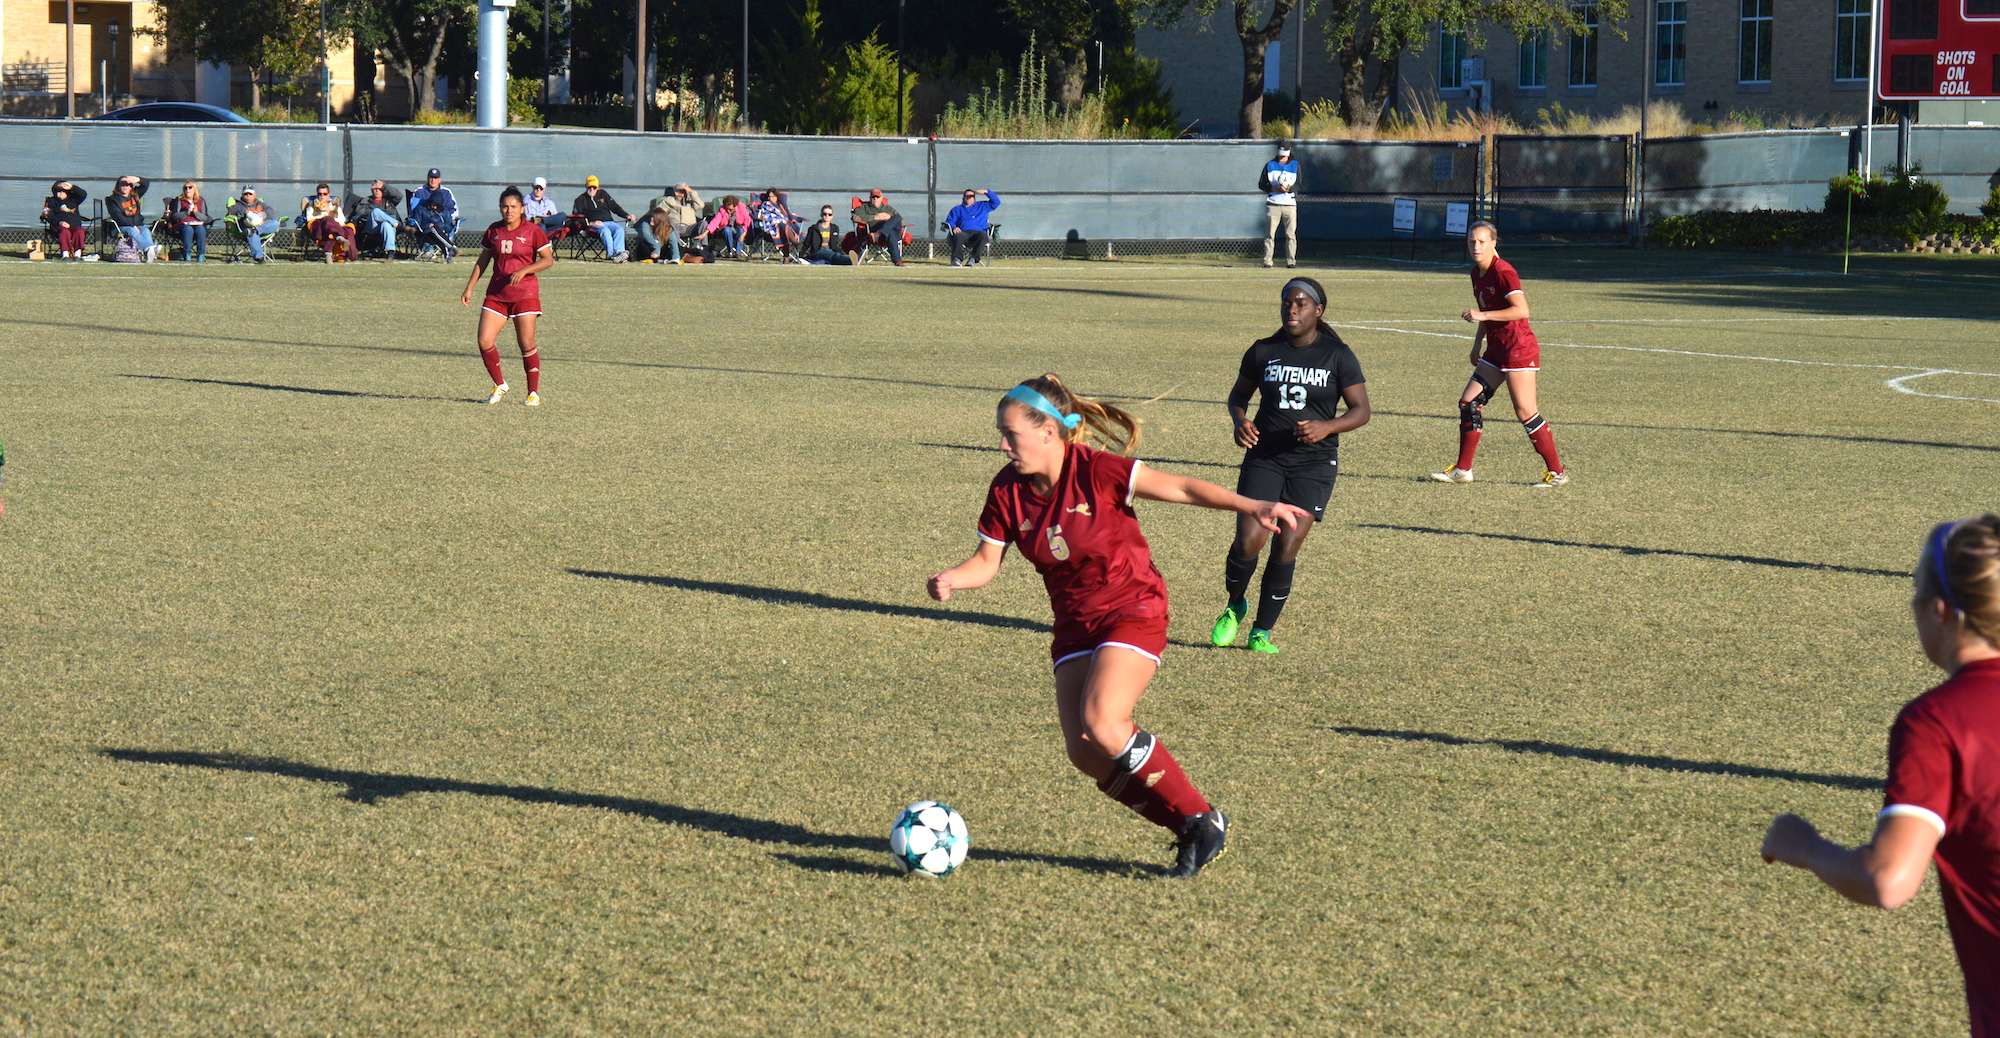 'Roos Battle to Draw in Regular Season Finale